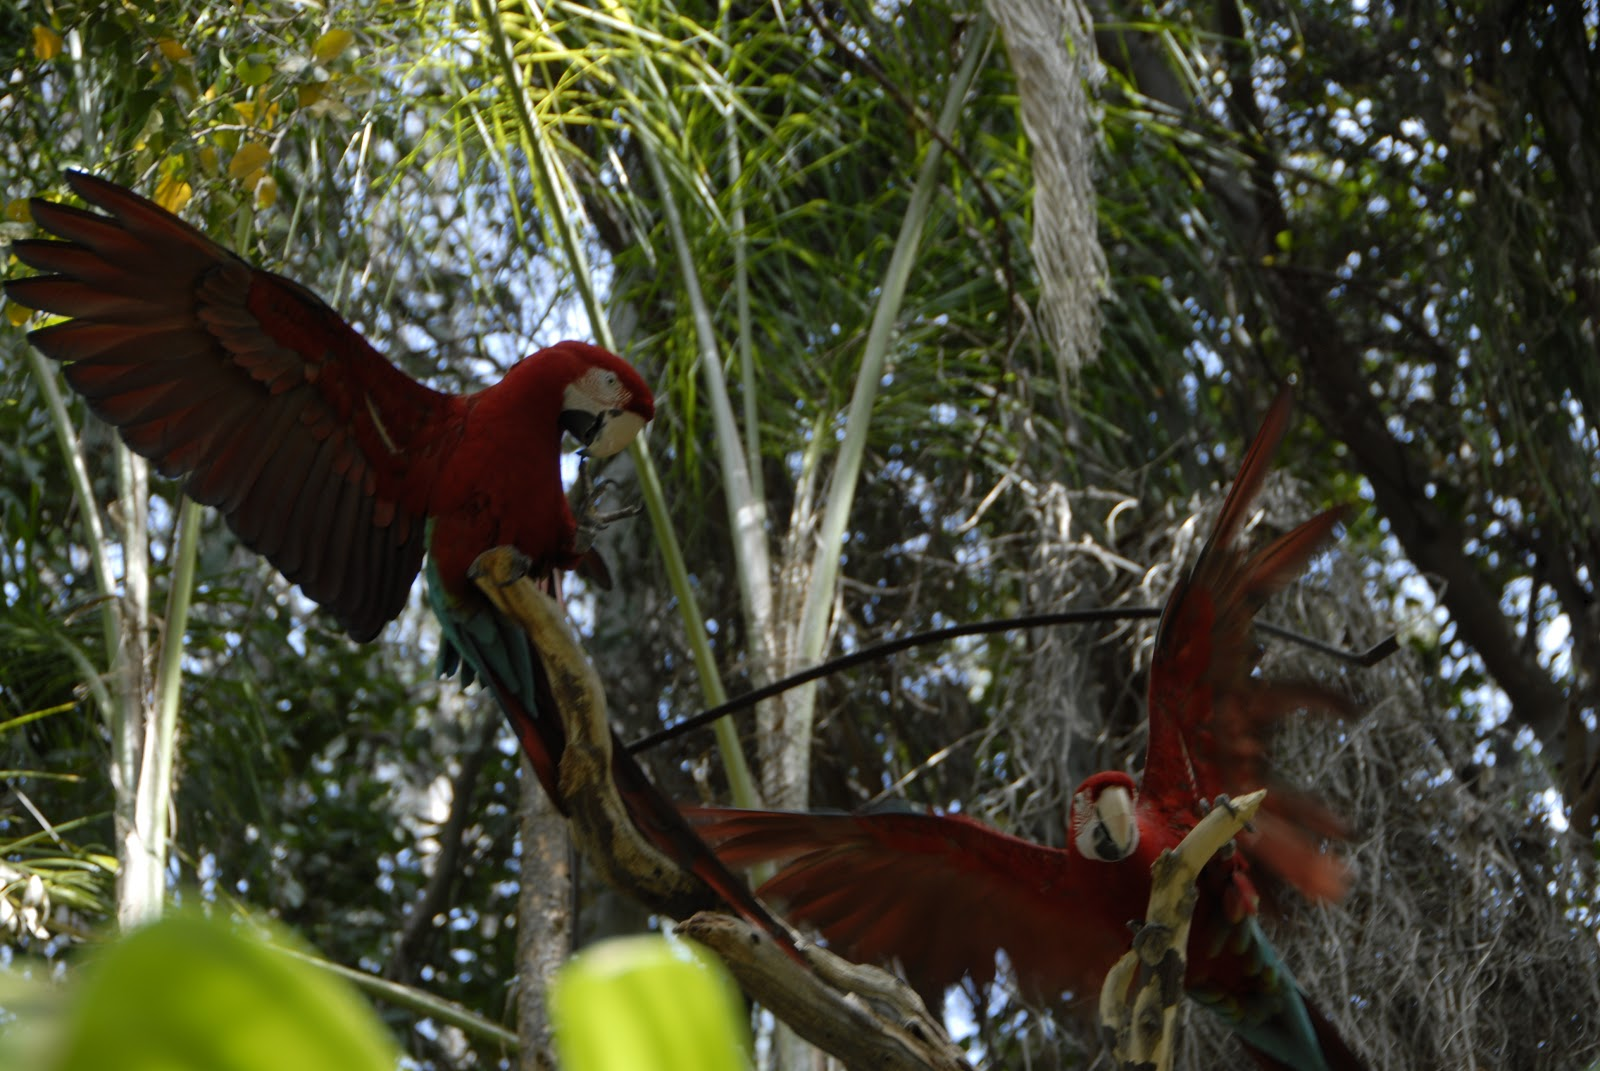 Two large red parrots